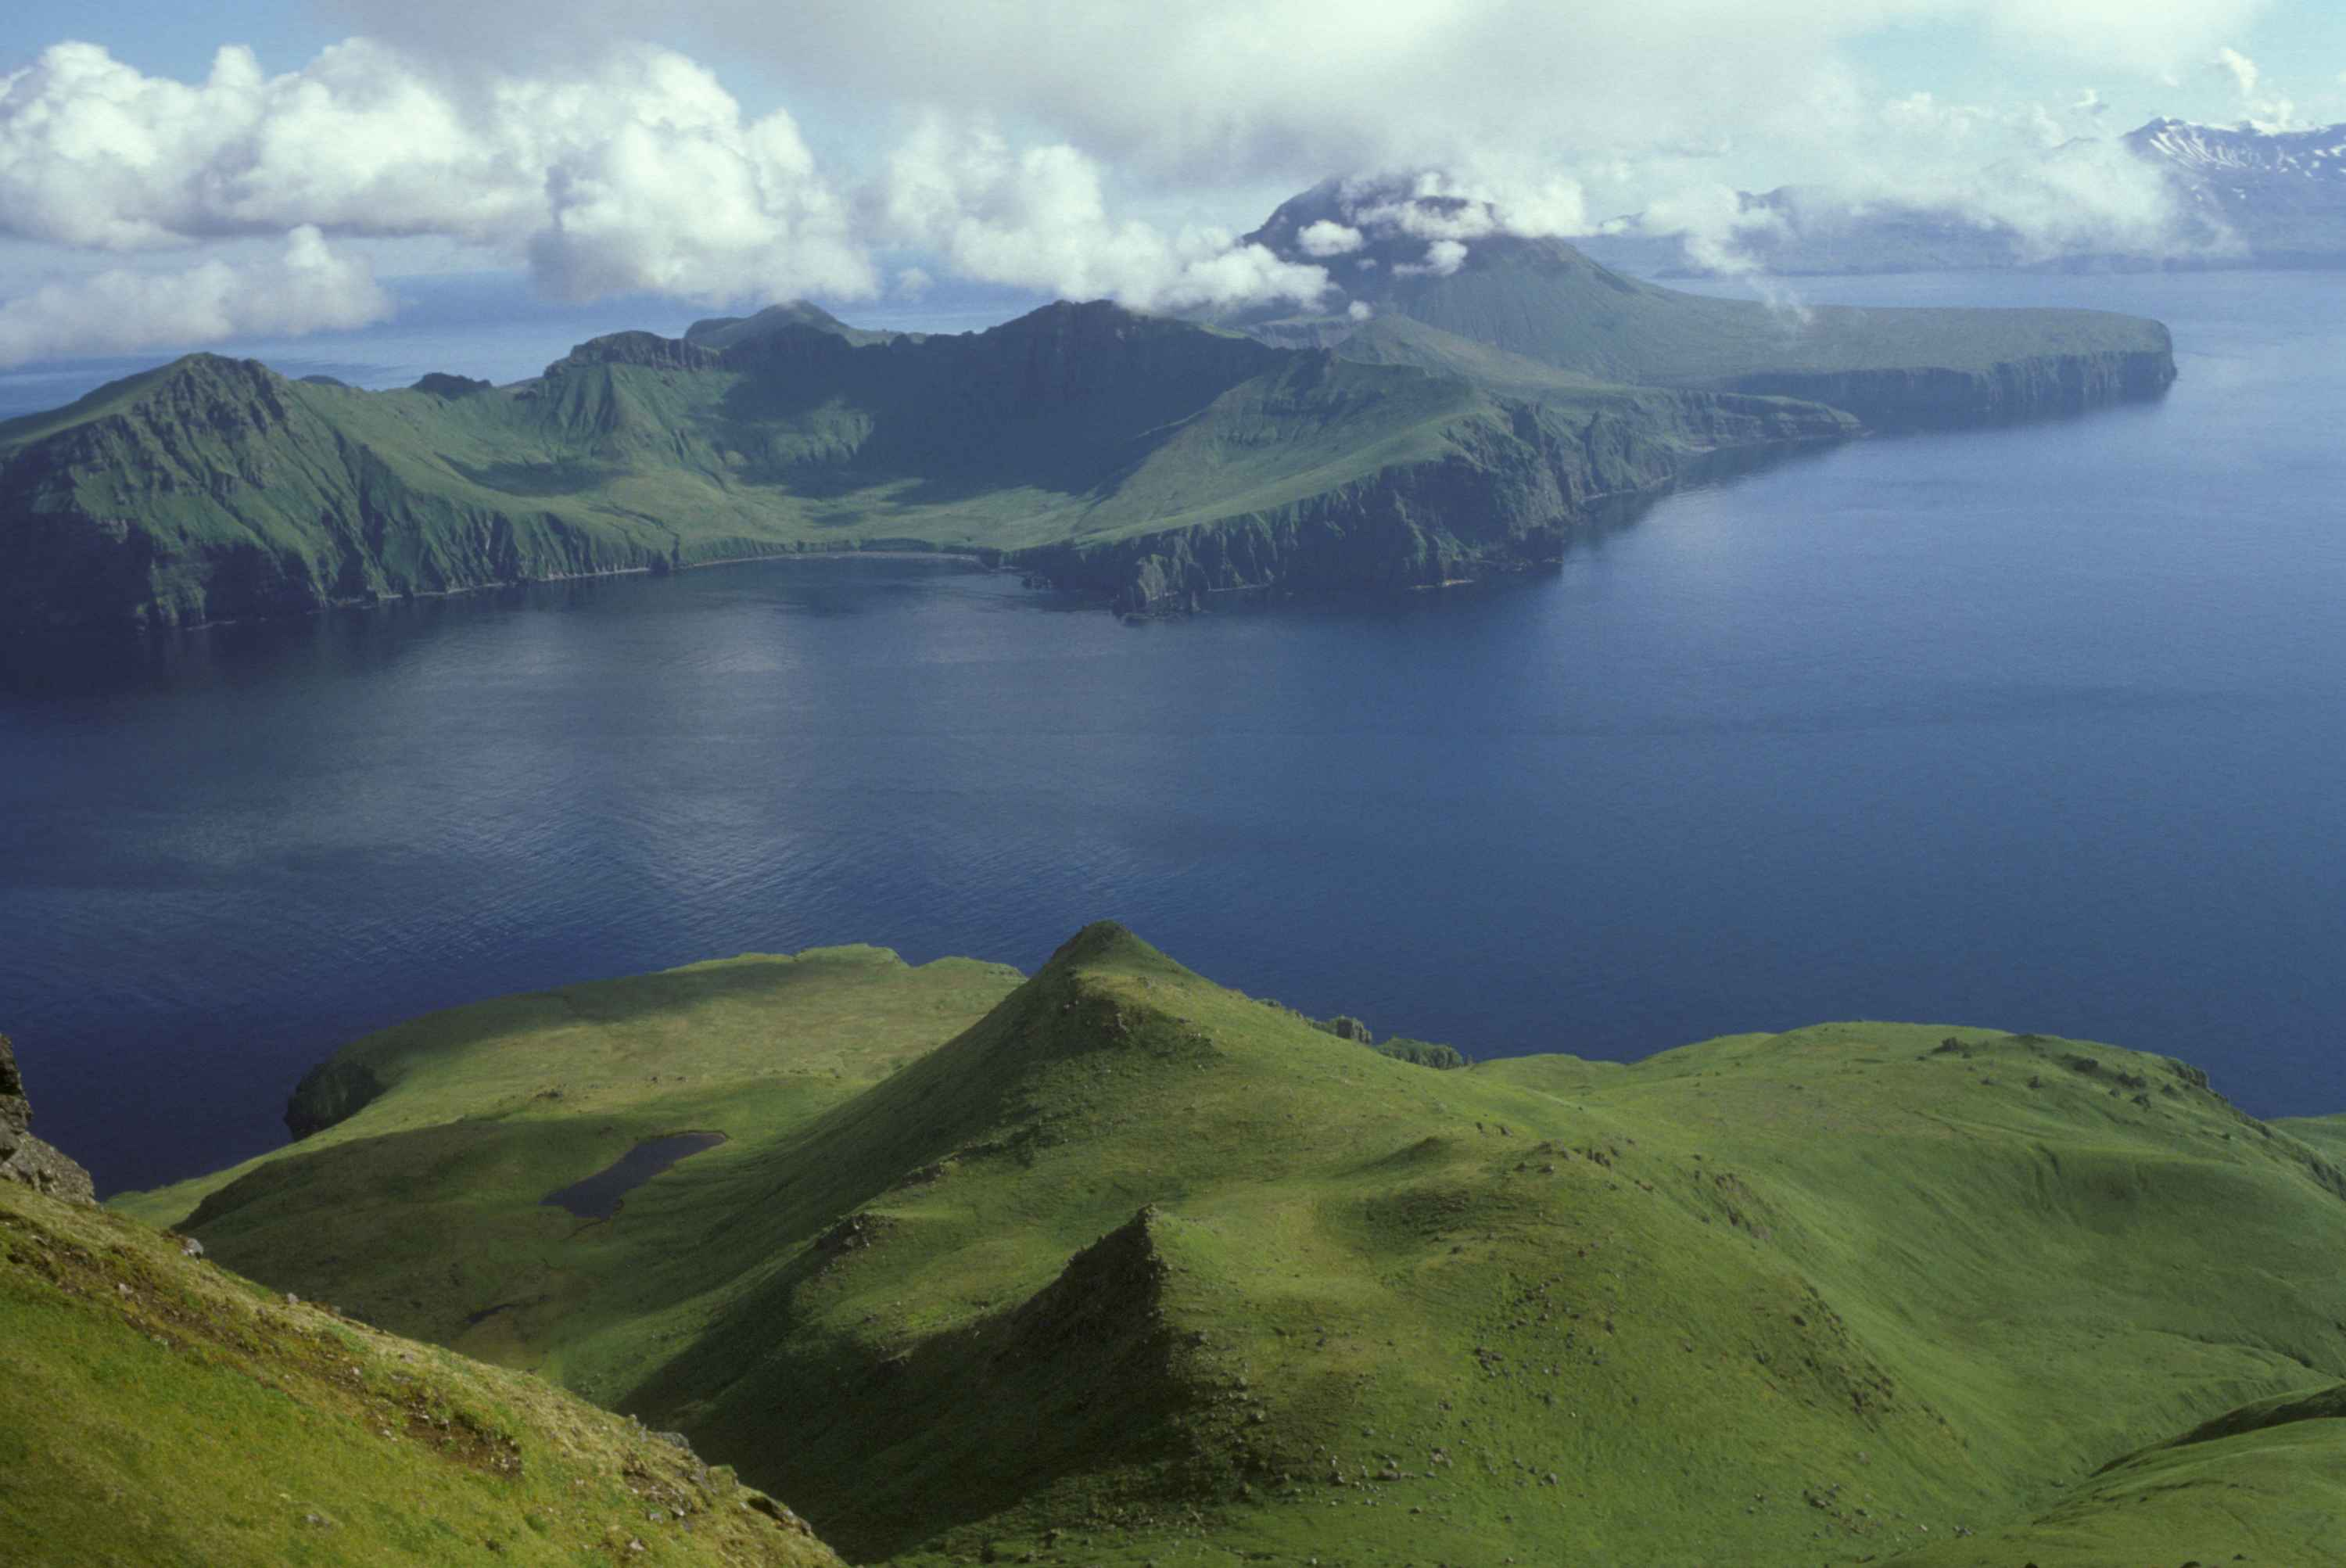 File:Beautiful view from the top of green hills on the remote island ...